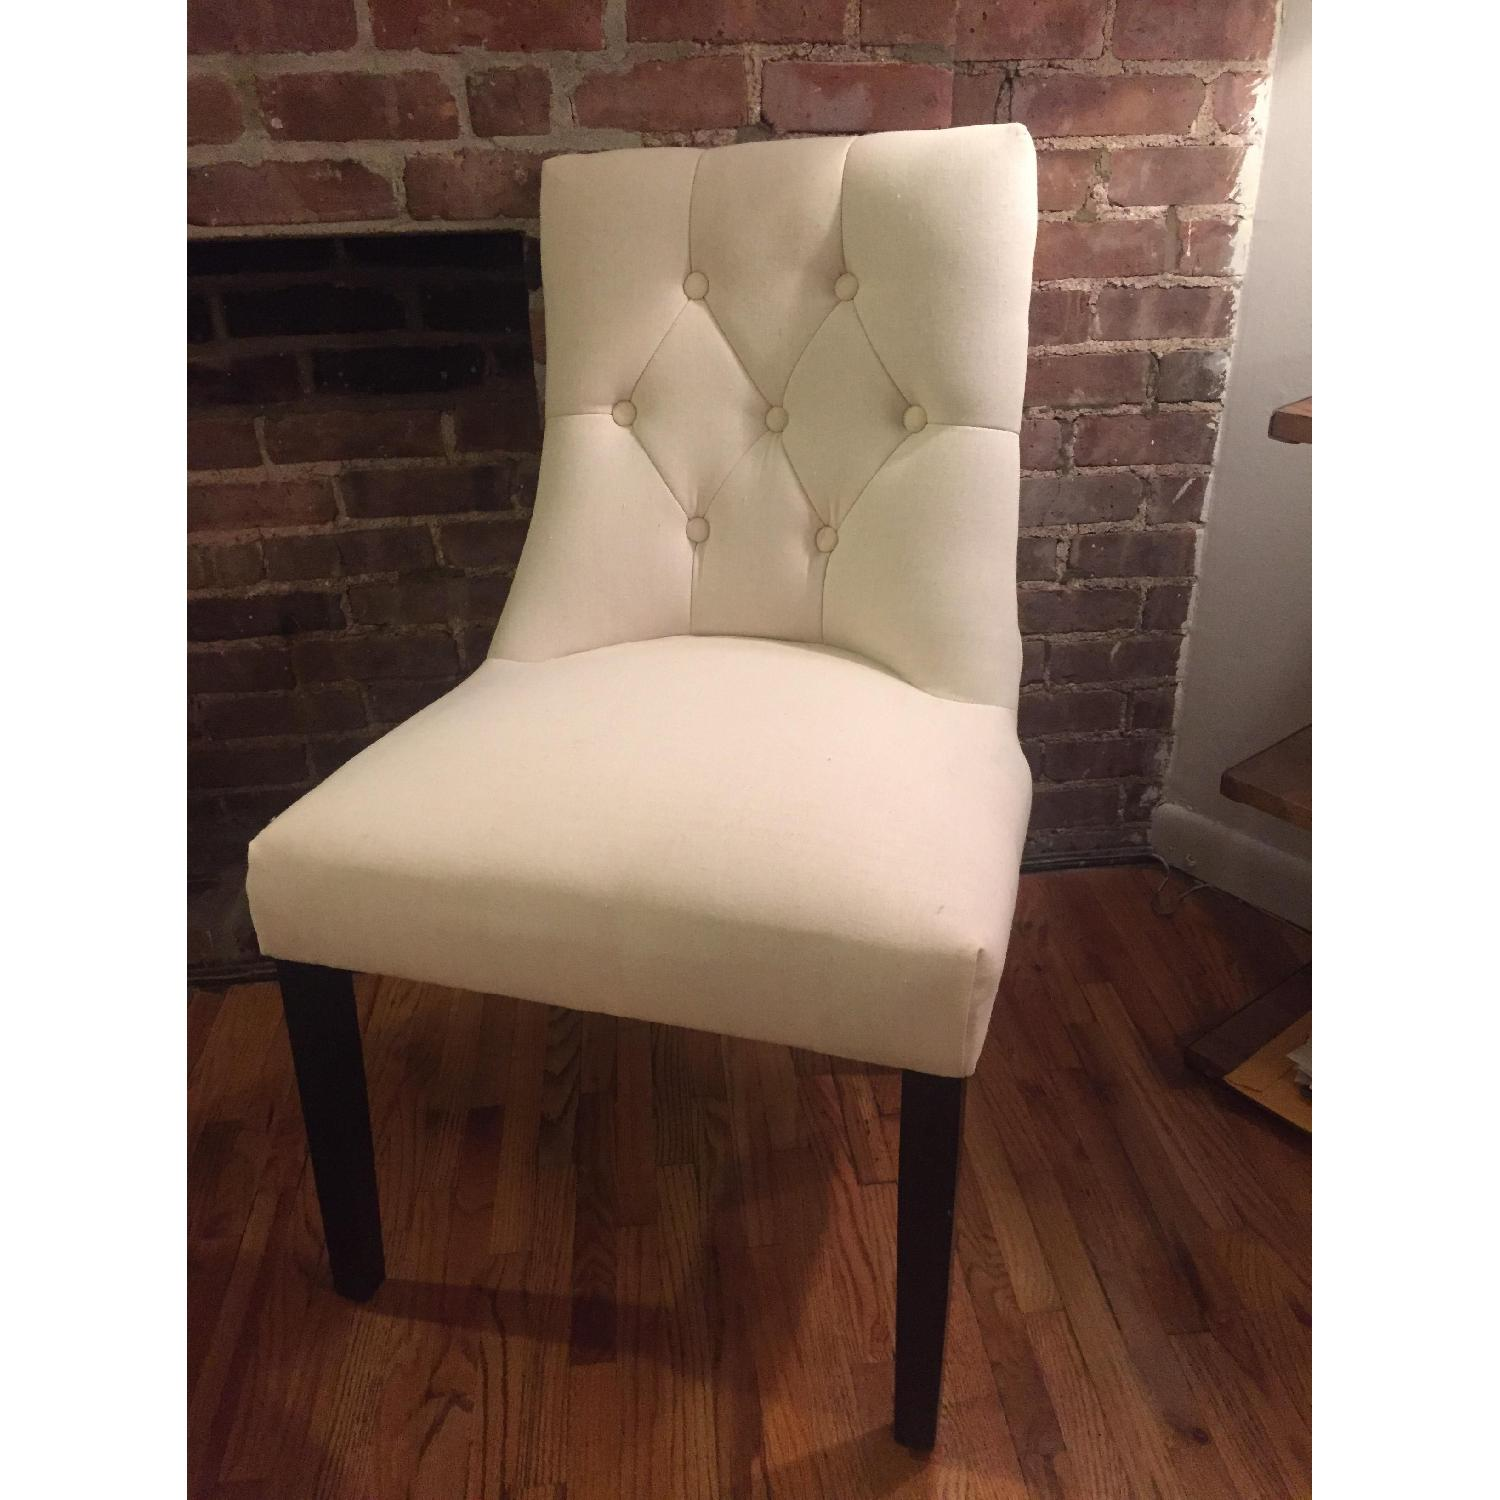 bellcrest button tufted upholstered dining chairs